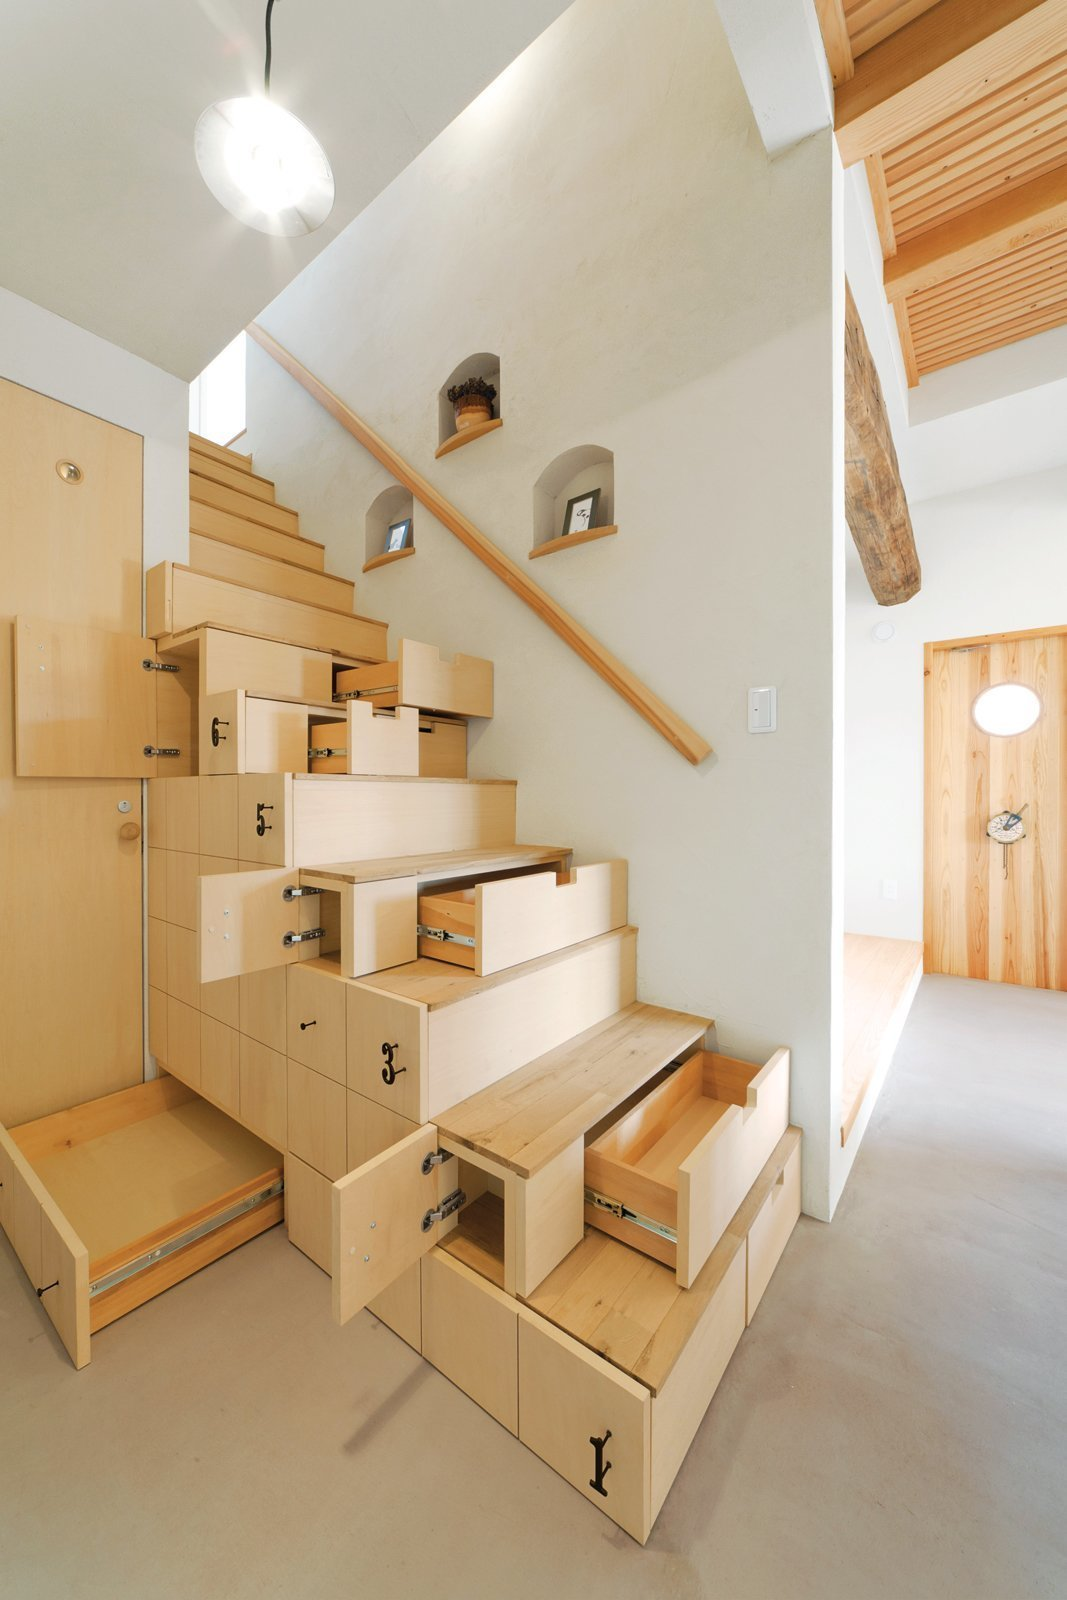 """Using a centuries-old Japanese carpentry concept of """"kaidan dansu"""" – mobile storage cabinetry, this home in Koriyama, Japan by architect Kotaro Anzai has a modern staircase cabinet made of linden plywood that connects the ground floor living room to the upper level of the house.  Photo 5 of 10 in 10 Homes With Clever Storage Solutions"""